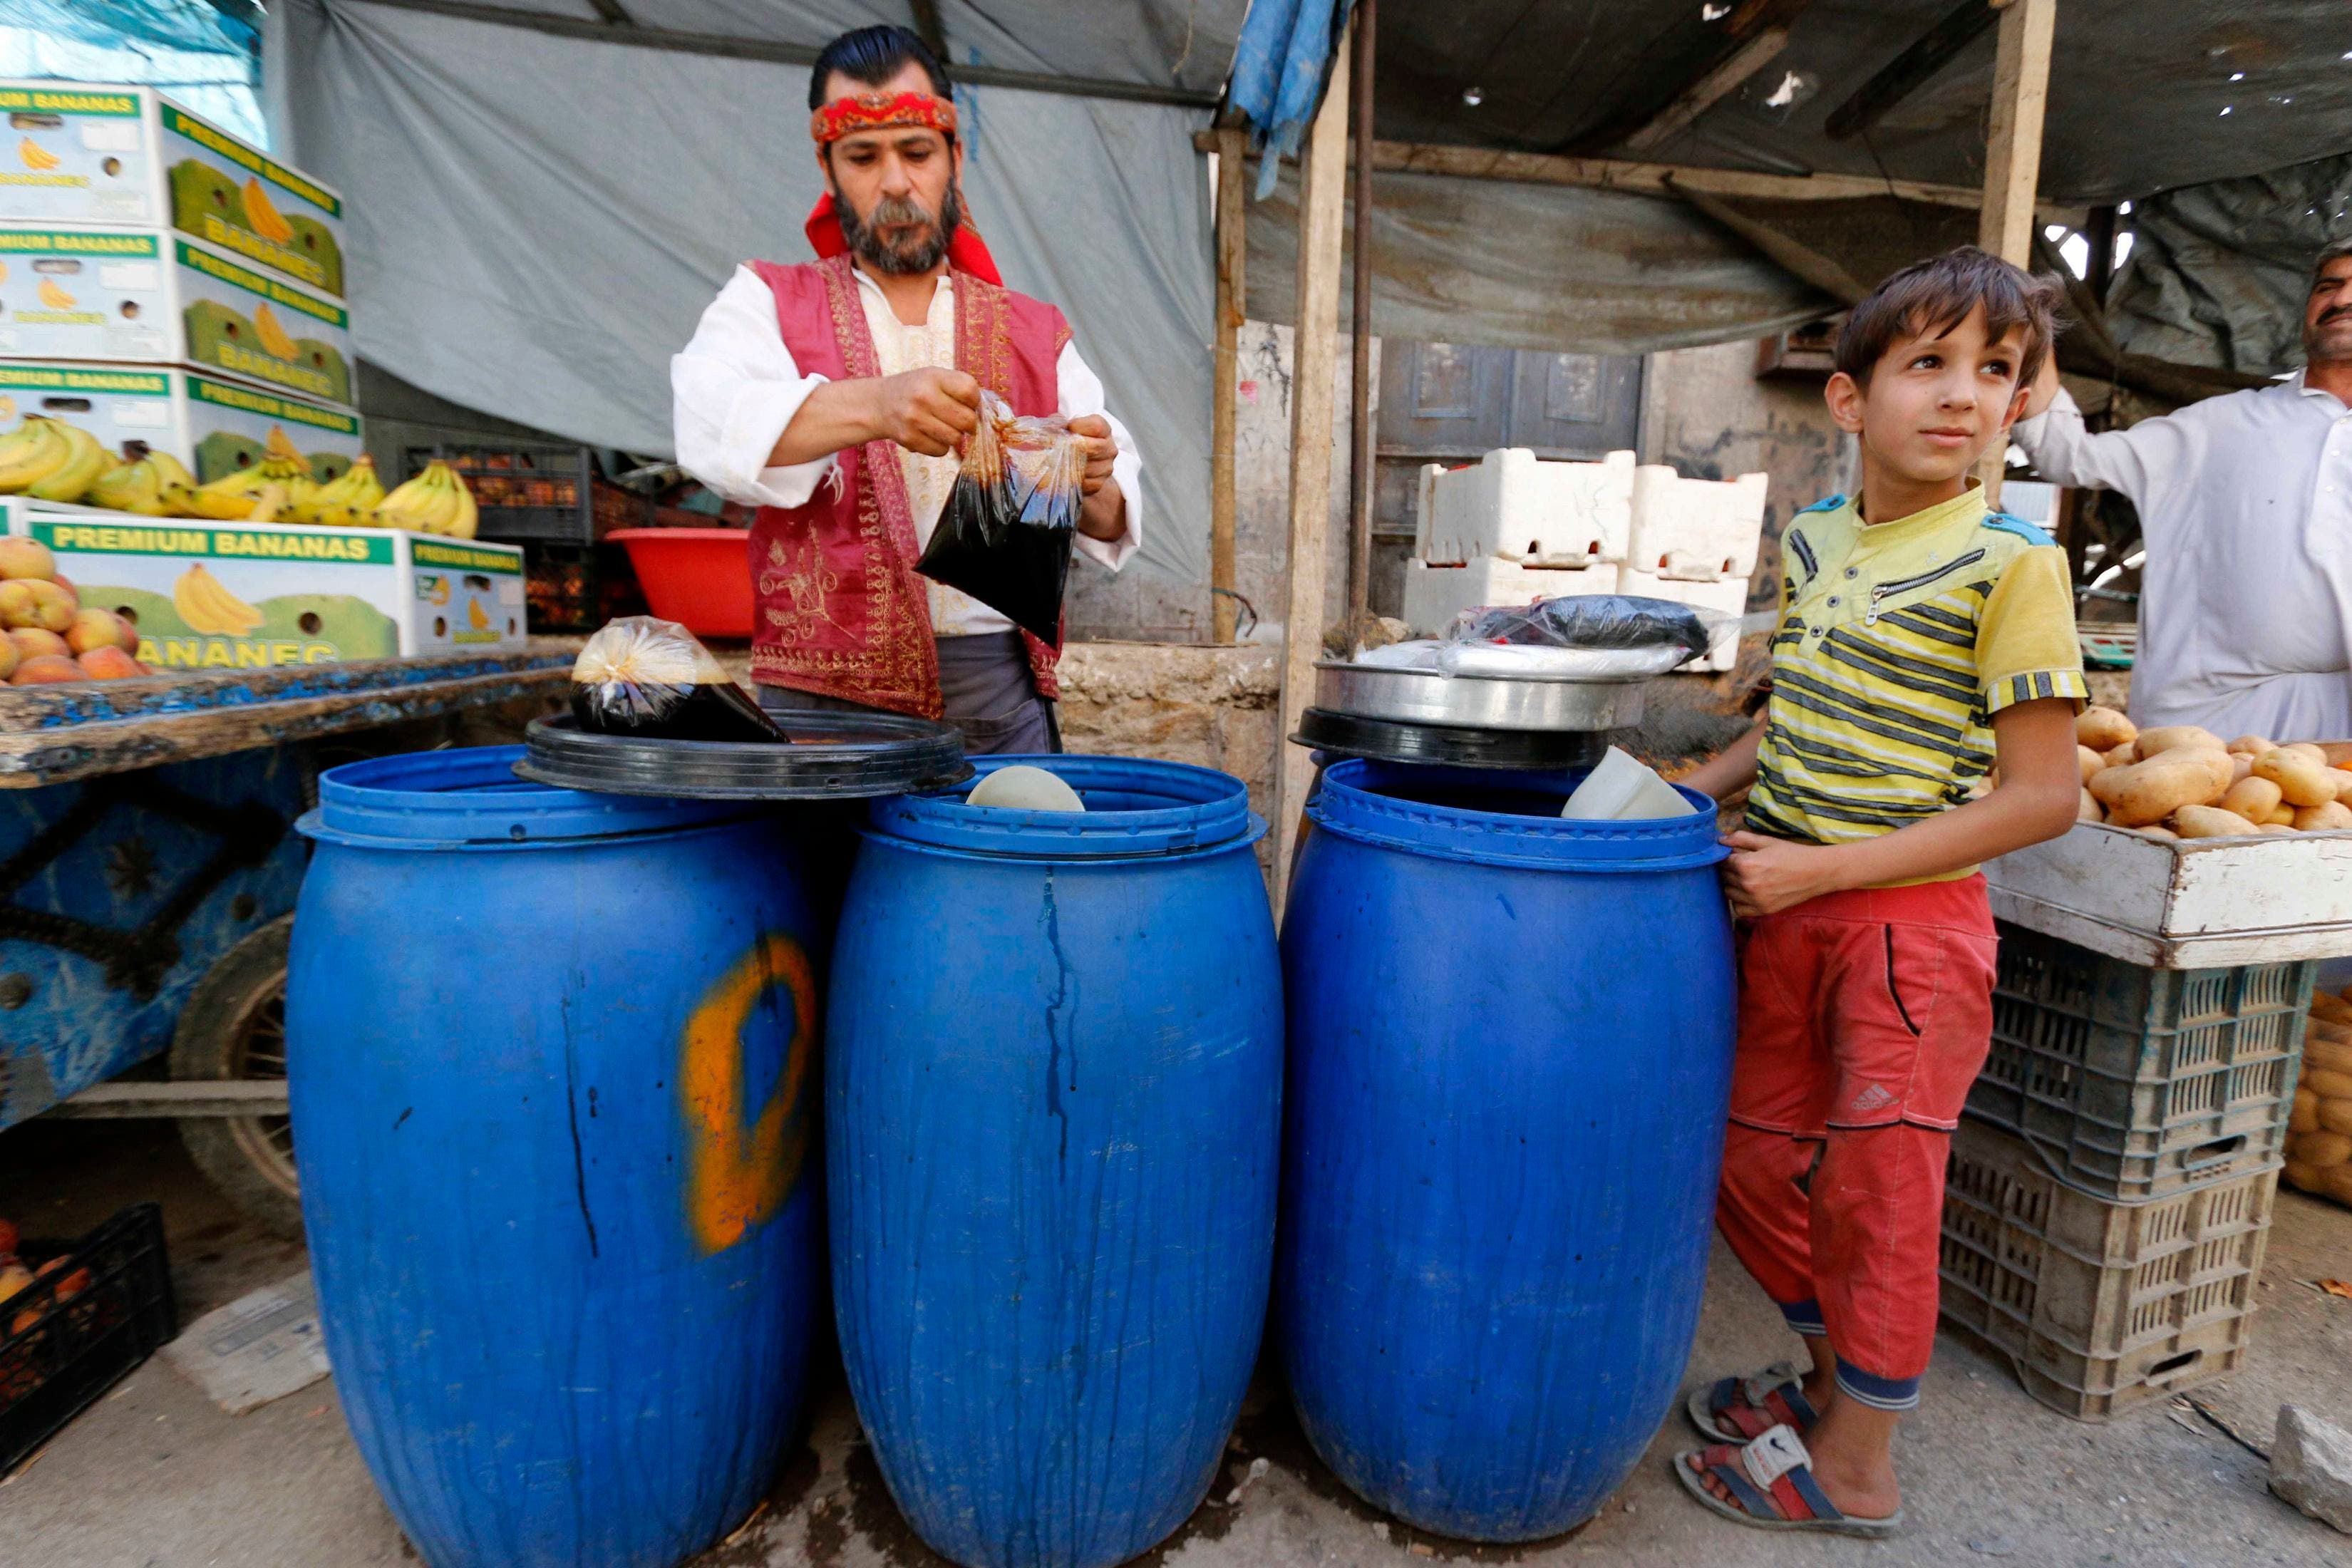 Syrians mark the holy month of Ramadan